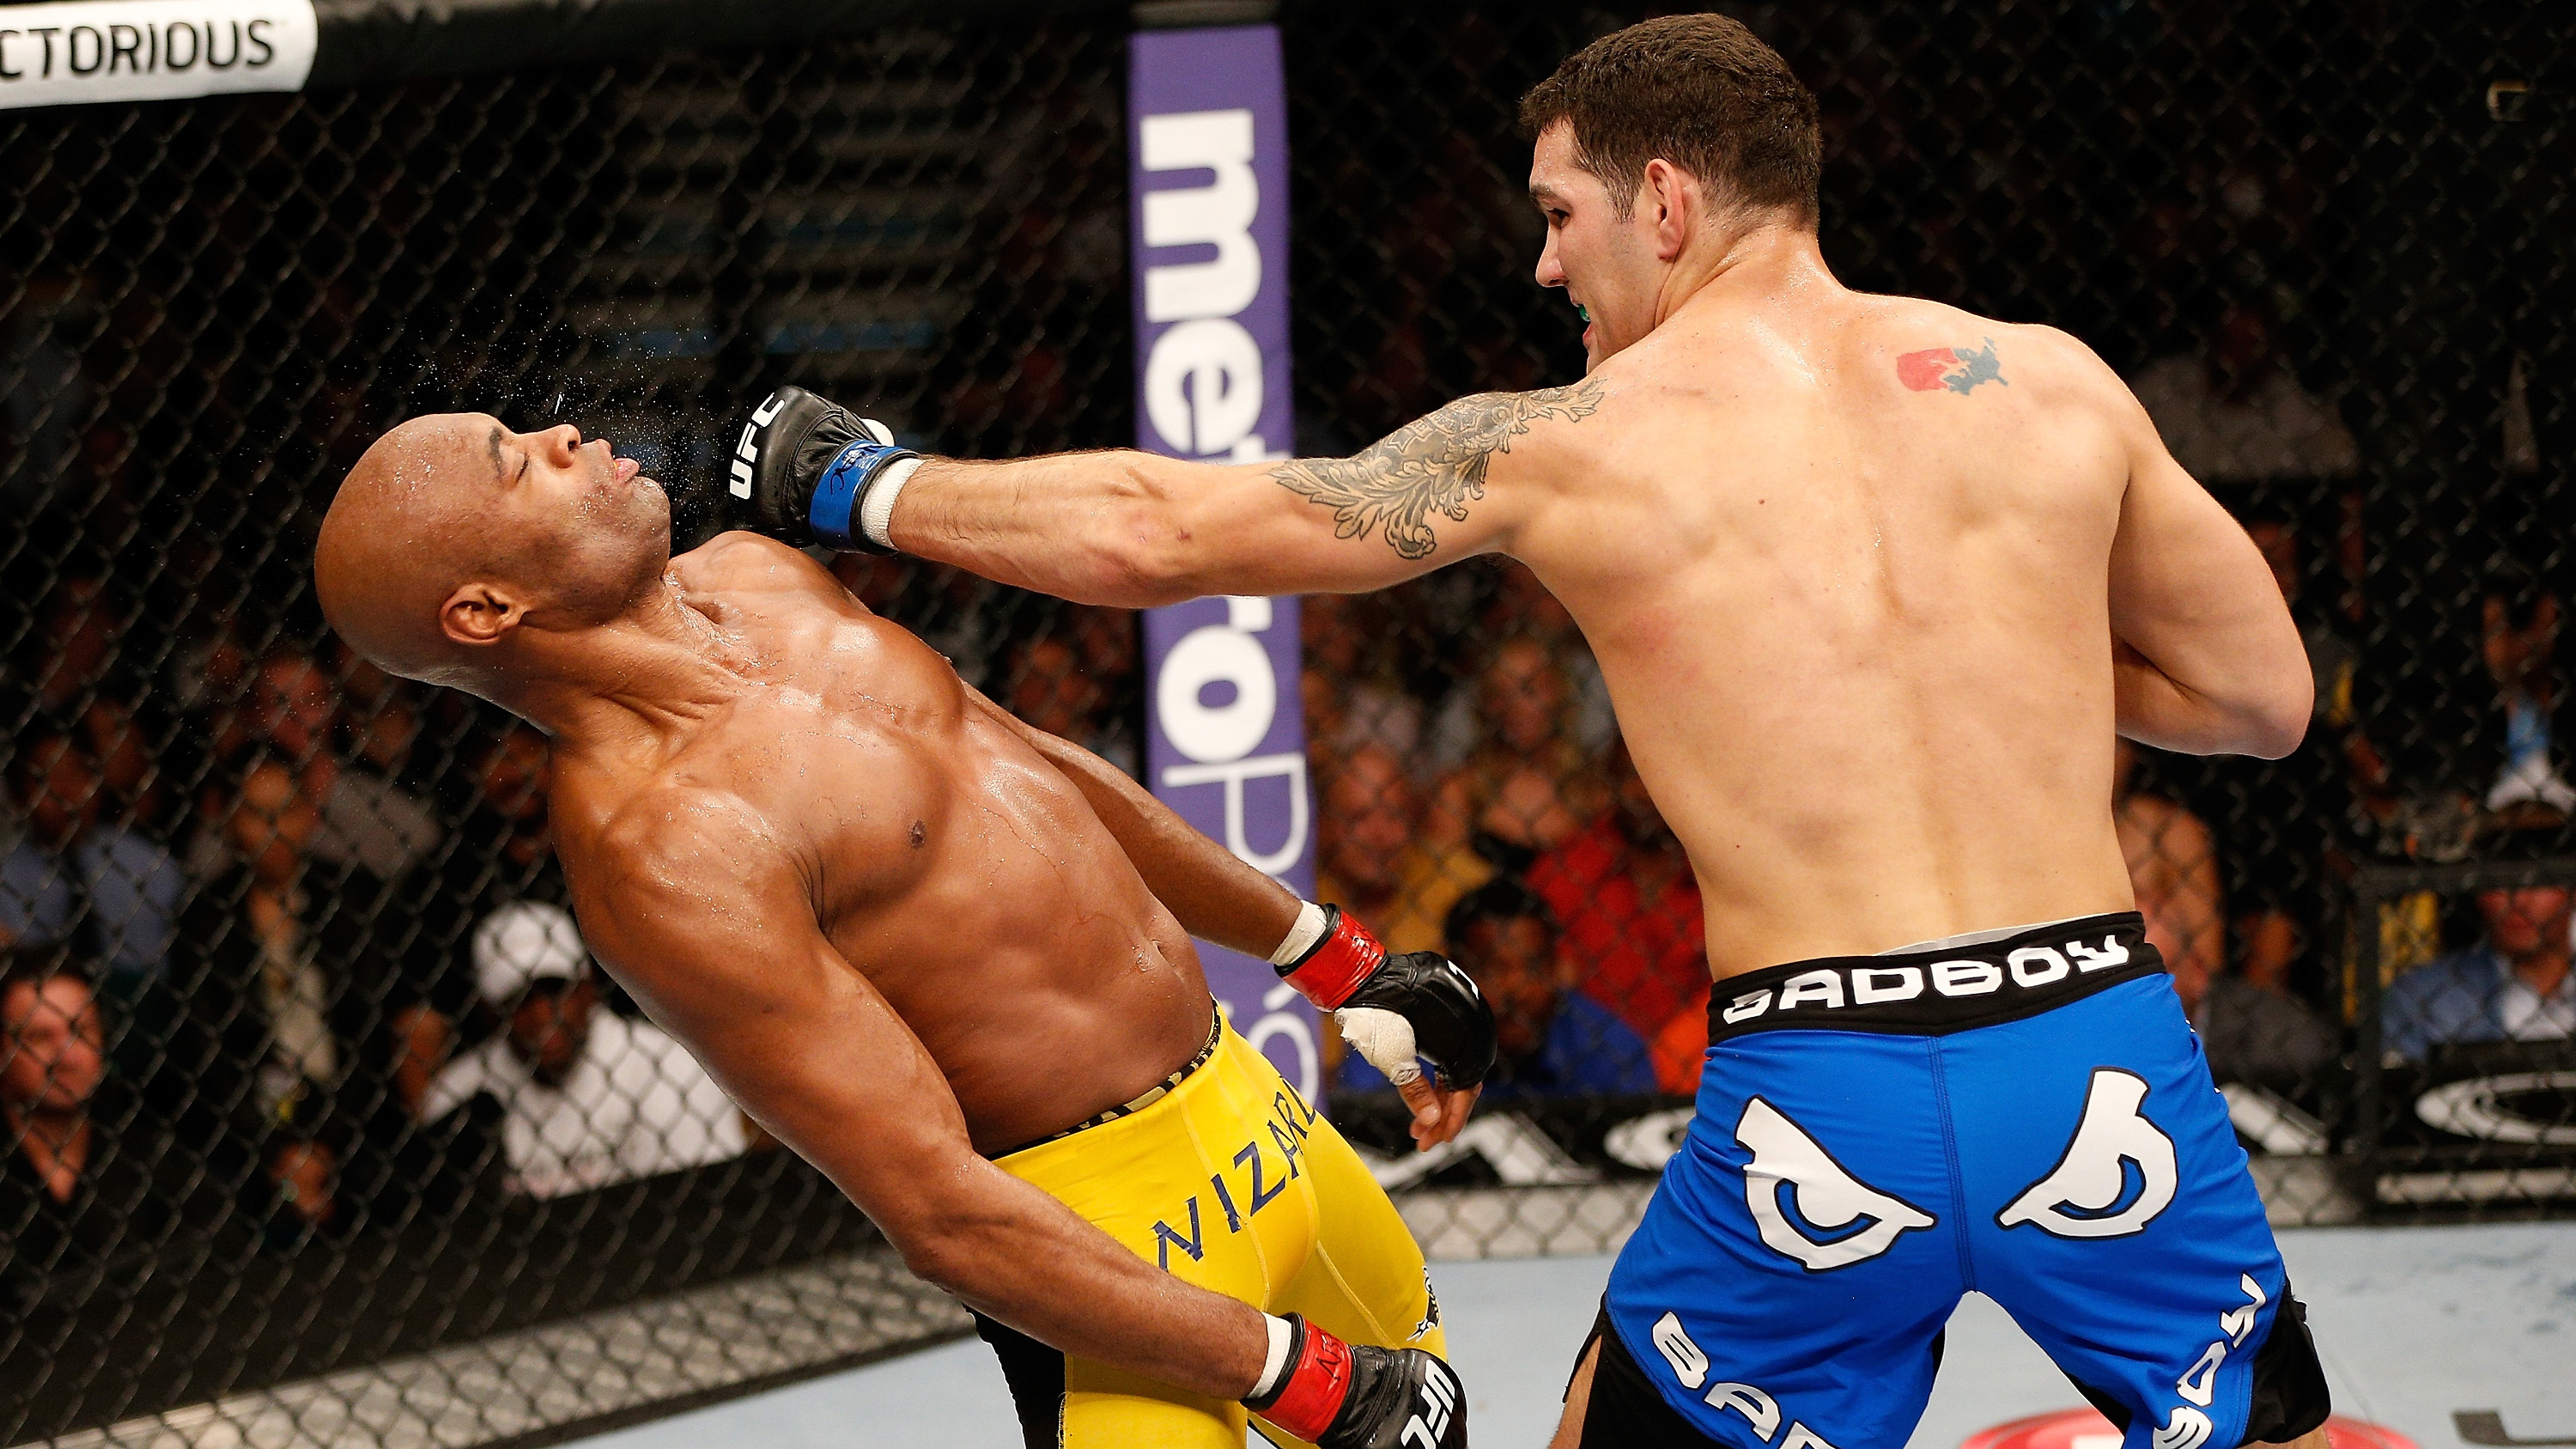 Weidman did what was once impossible - defeat 'The Spider' at UFC 162 (Photo by Josh Hedges/Zuffa LLC/Zuffa LLC via Getty Images)